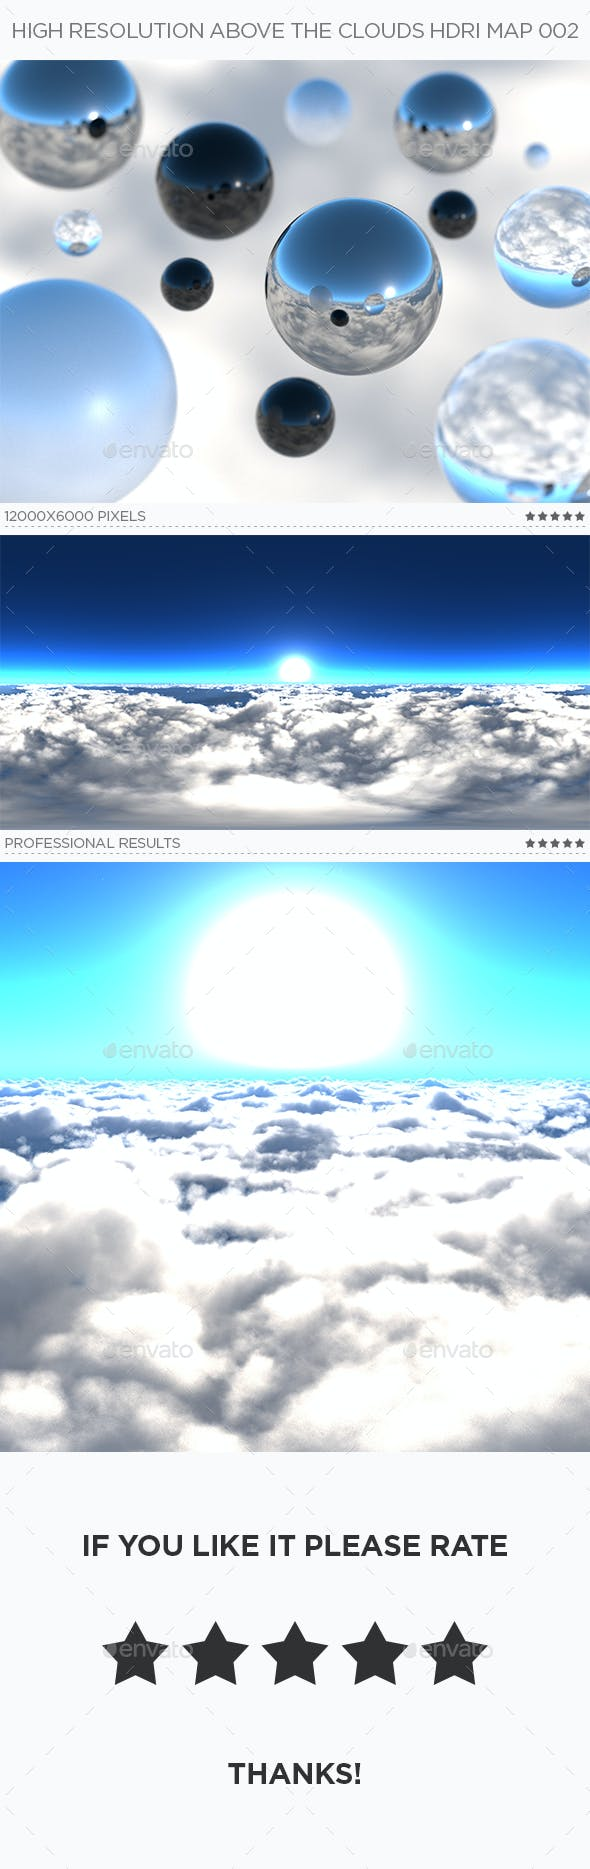 High Resolution Above The Clouds HDRi Map 002 - 3DOcean Item for Sale